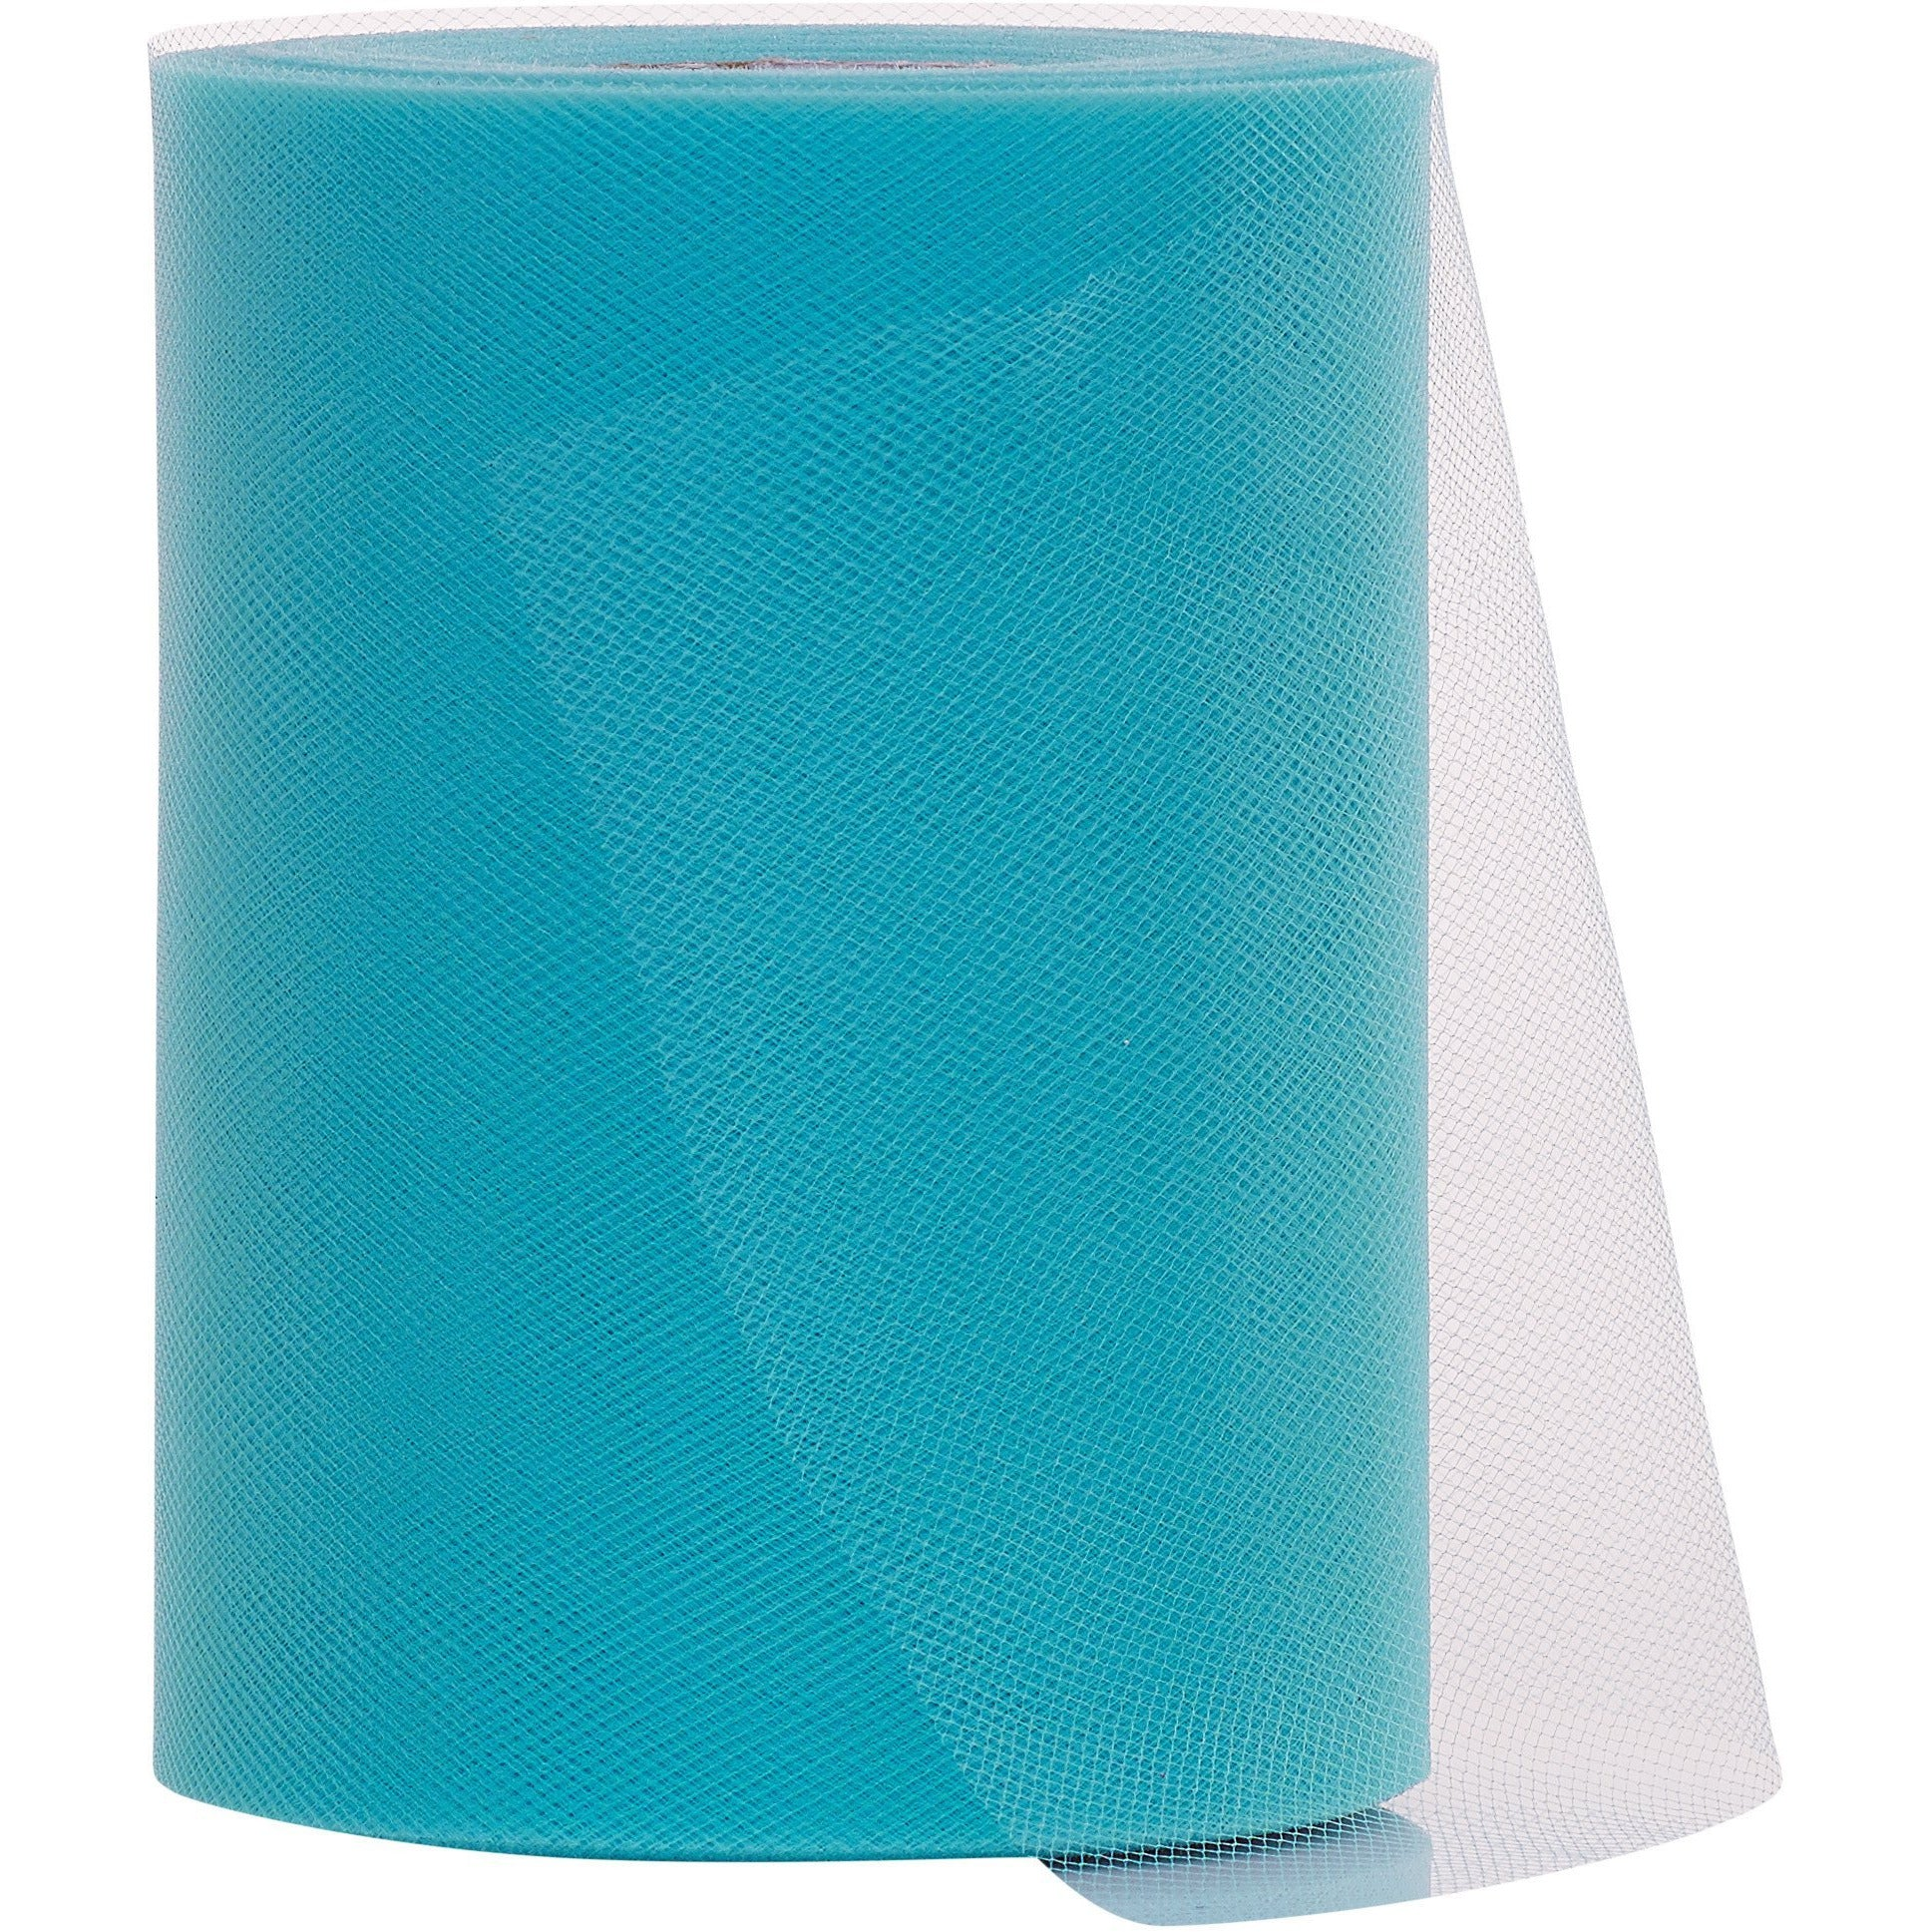 Turquoise Tulle Fabric Roll - 100 Yards